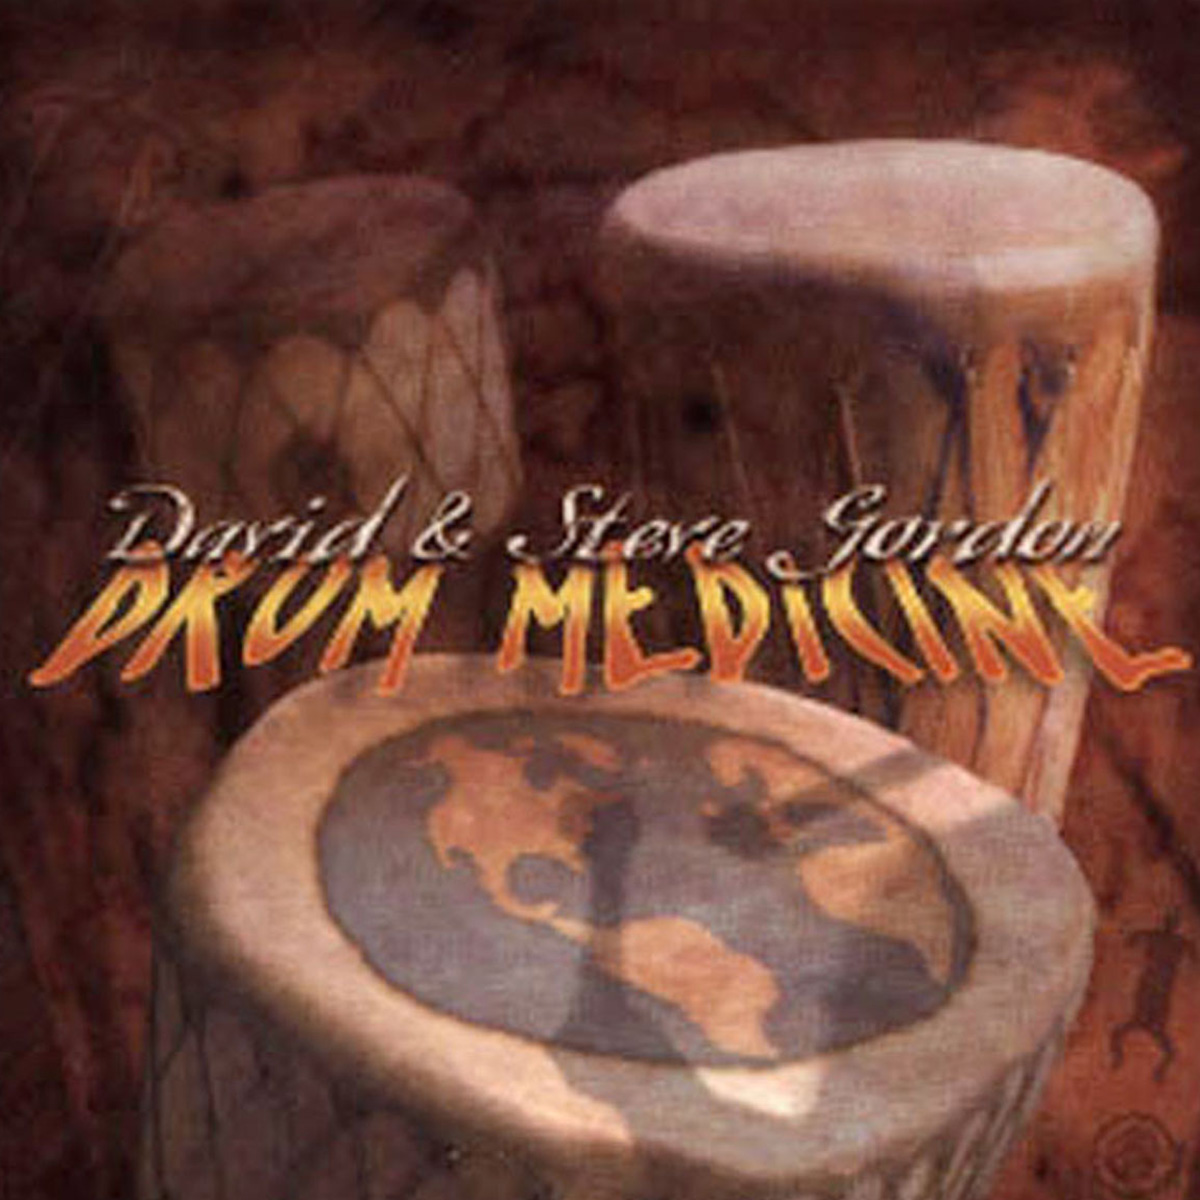 Drum Medicine by Gordon, David & Steve